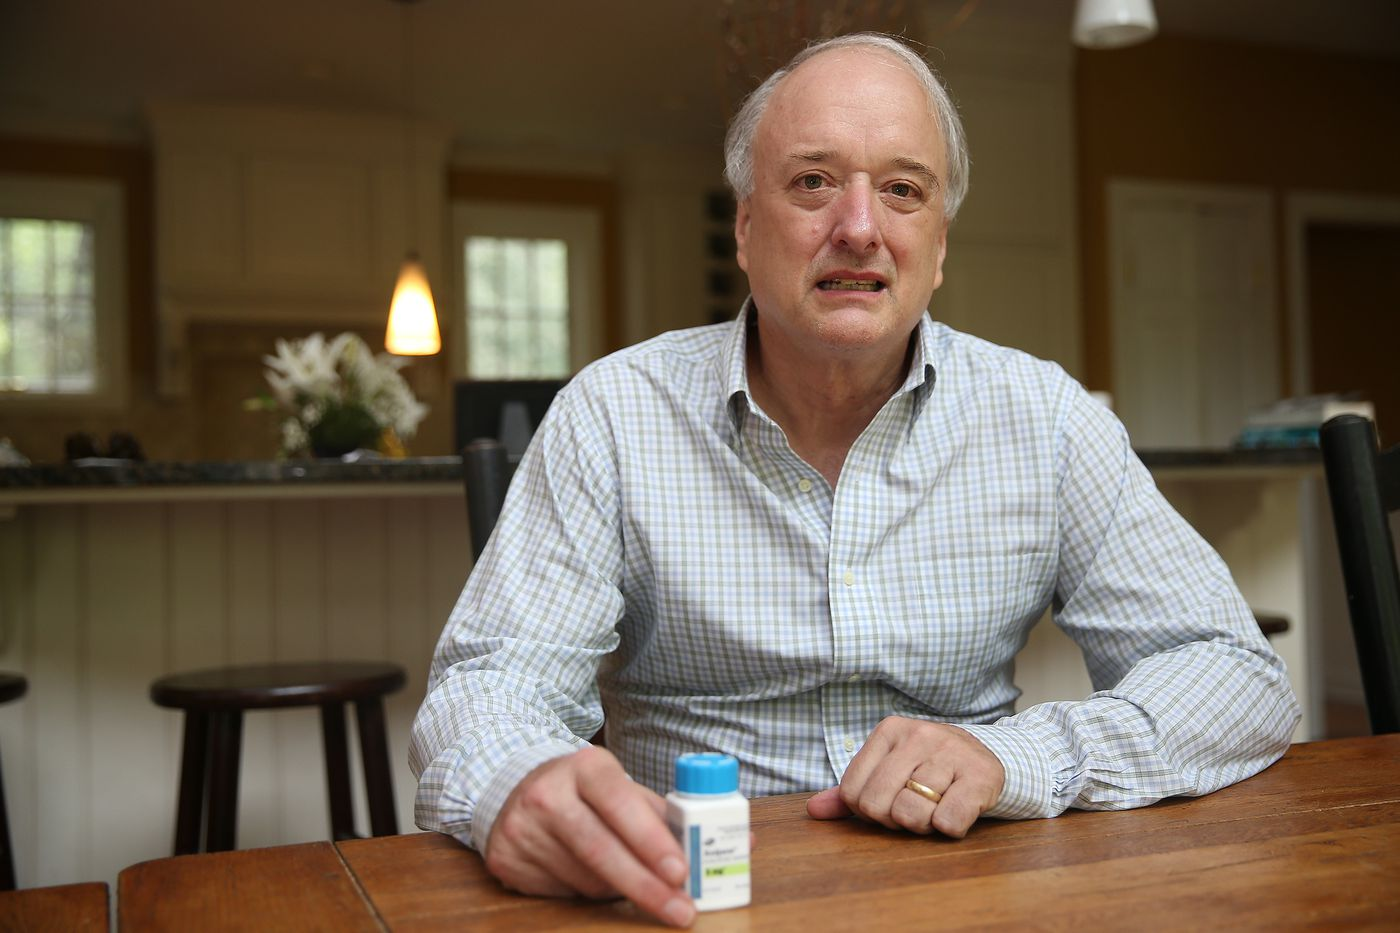 When medication prices are unaffordable, patients travel abroad for a better deal